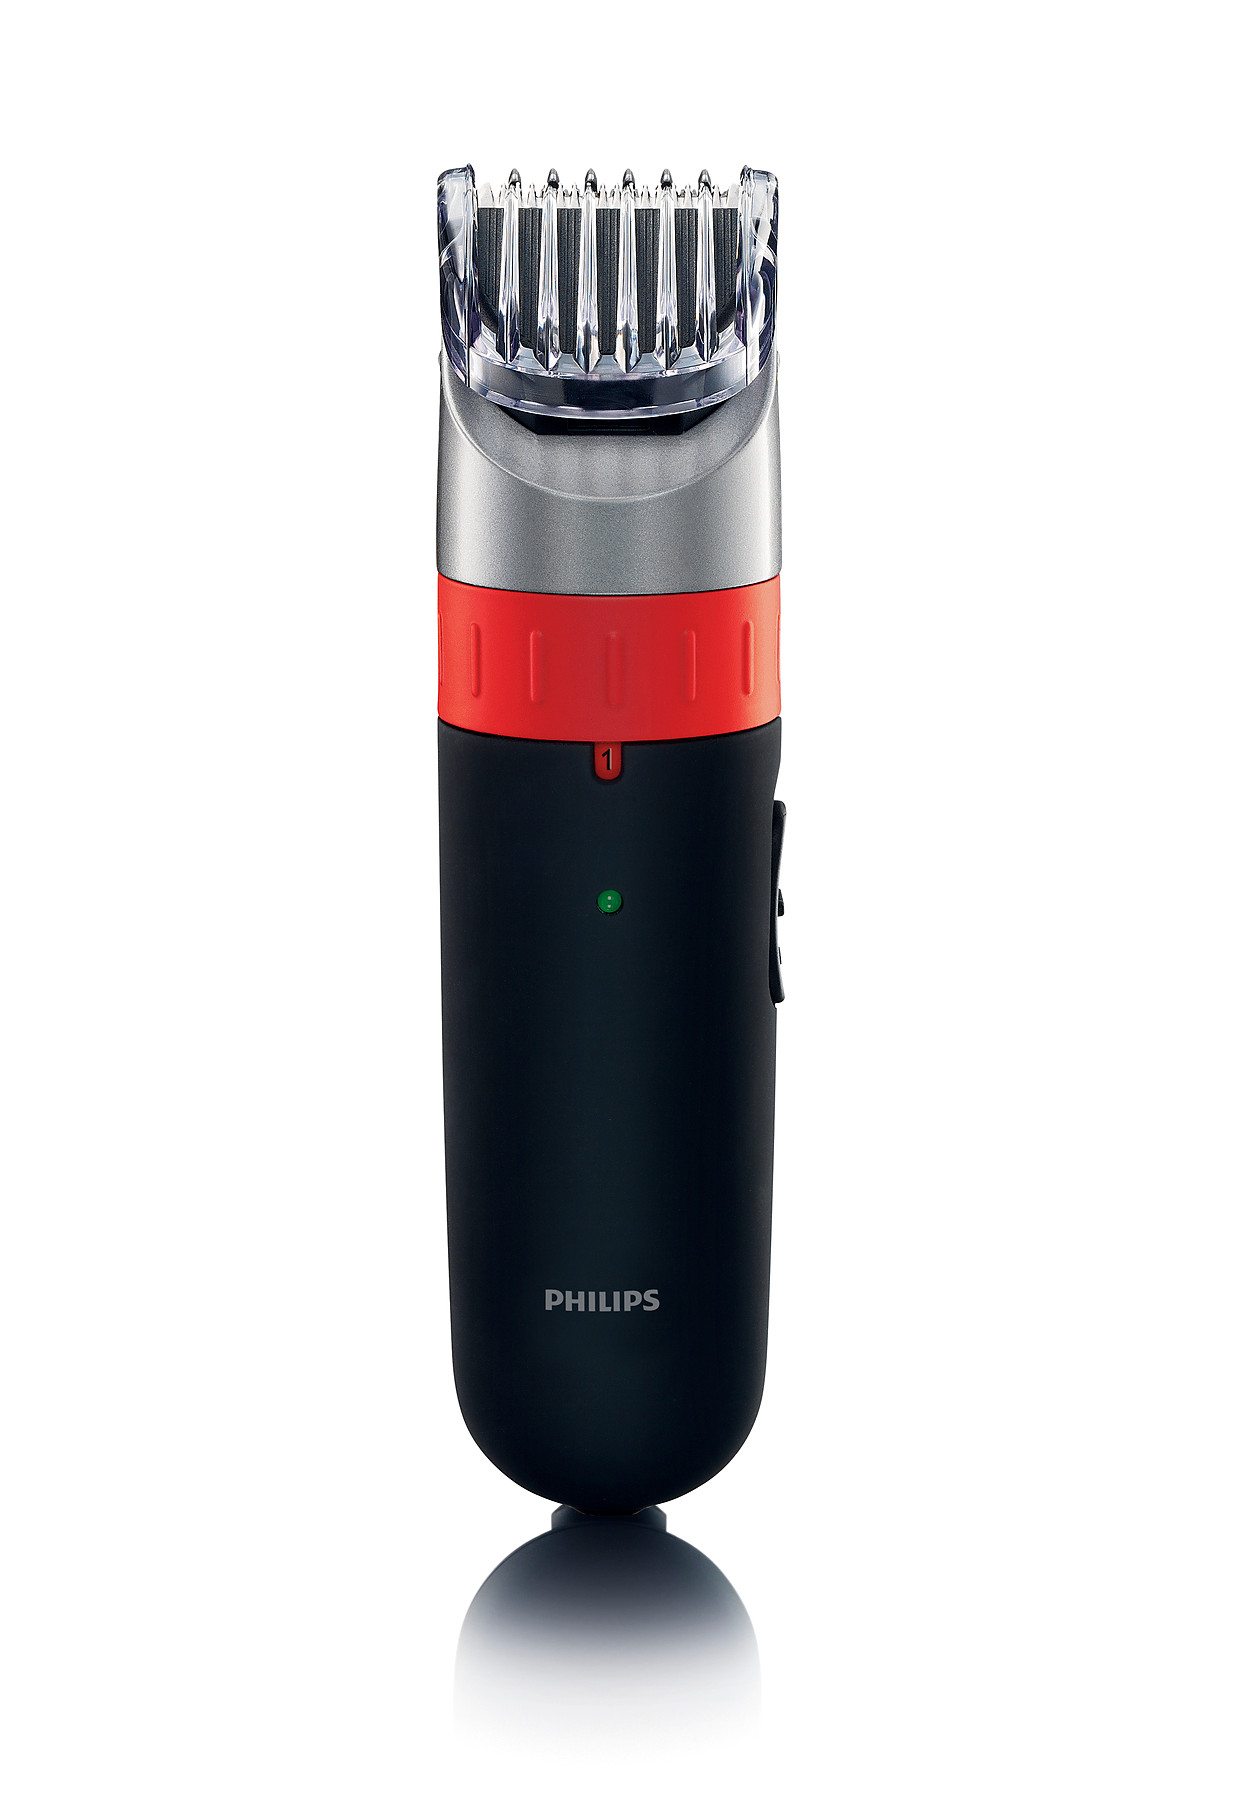 beardtrimmer series 3000 stubble and beard trimmer qt4019 15 philips. Black Bedroom Furniture Sets. Home Design Ideas